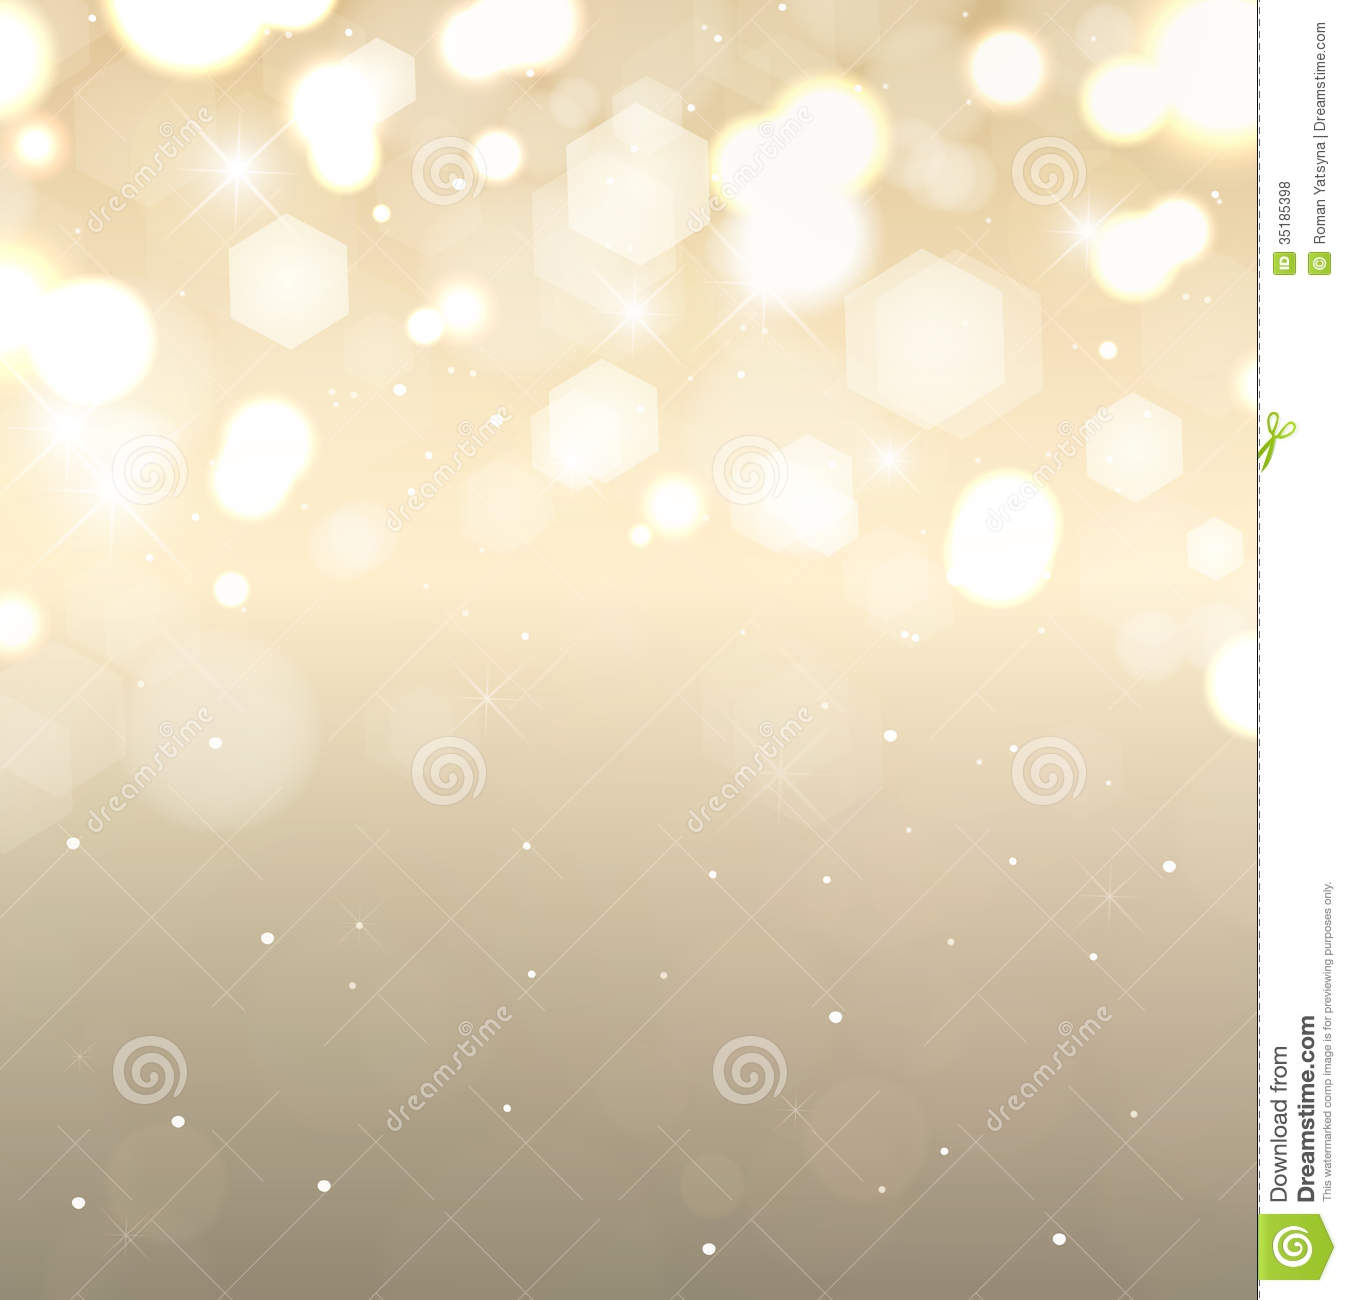 Golden Holiday Background  Flickering Lights With Royalty Free Stock